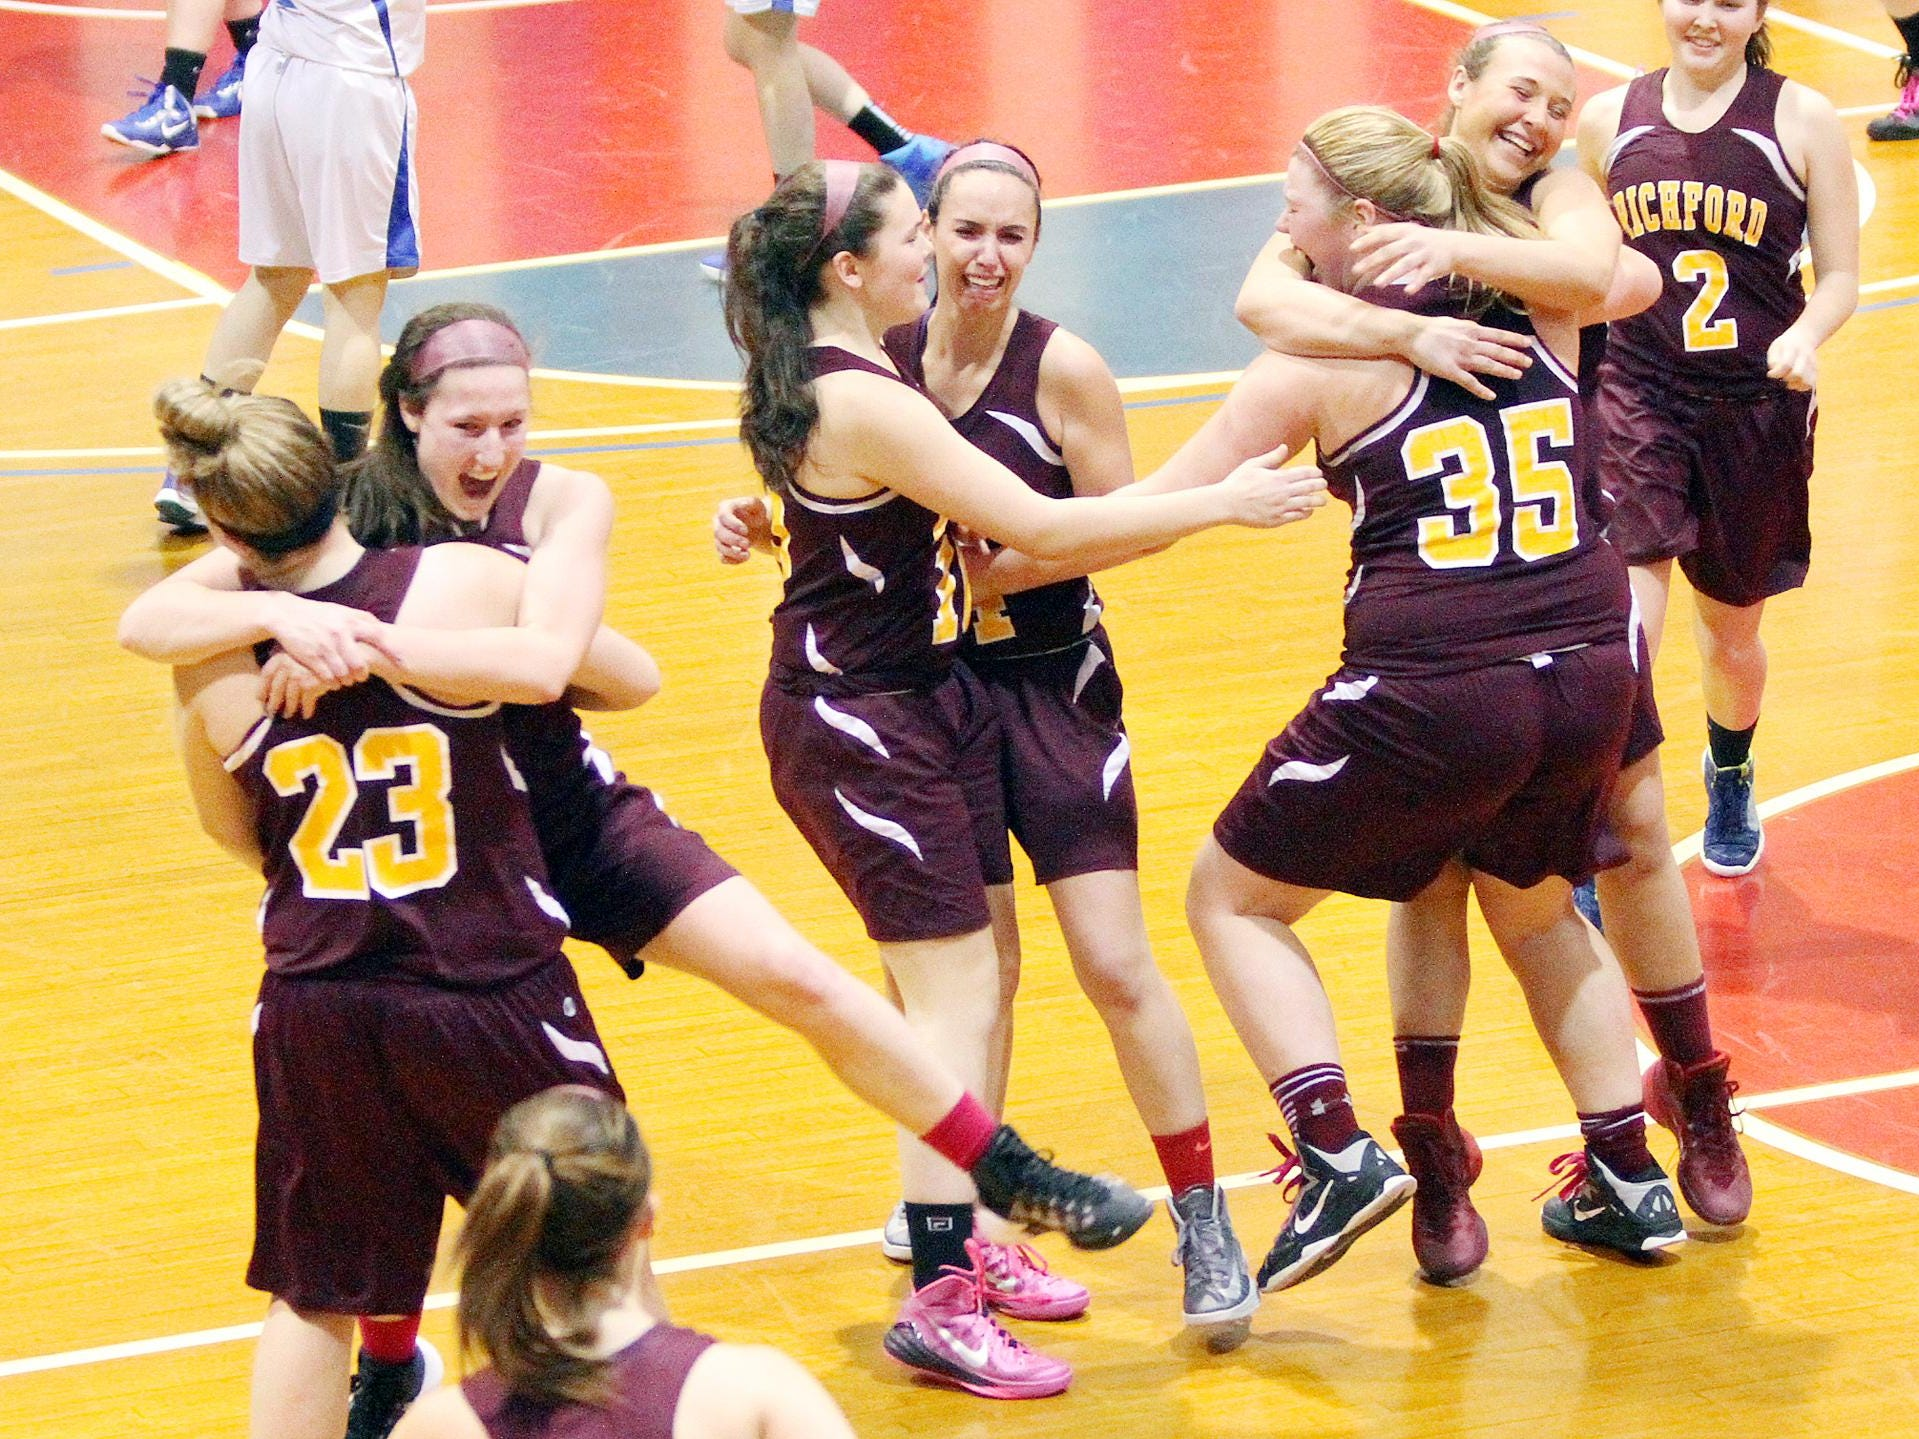 The Richford Rockets celebrate following their 71-36 win over Thetford in the Division III high school girls basketball state championship game in March.